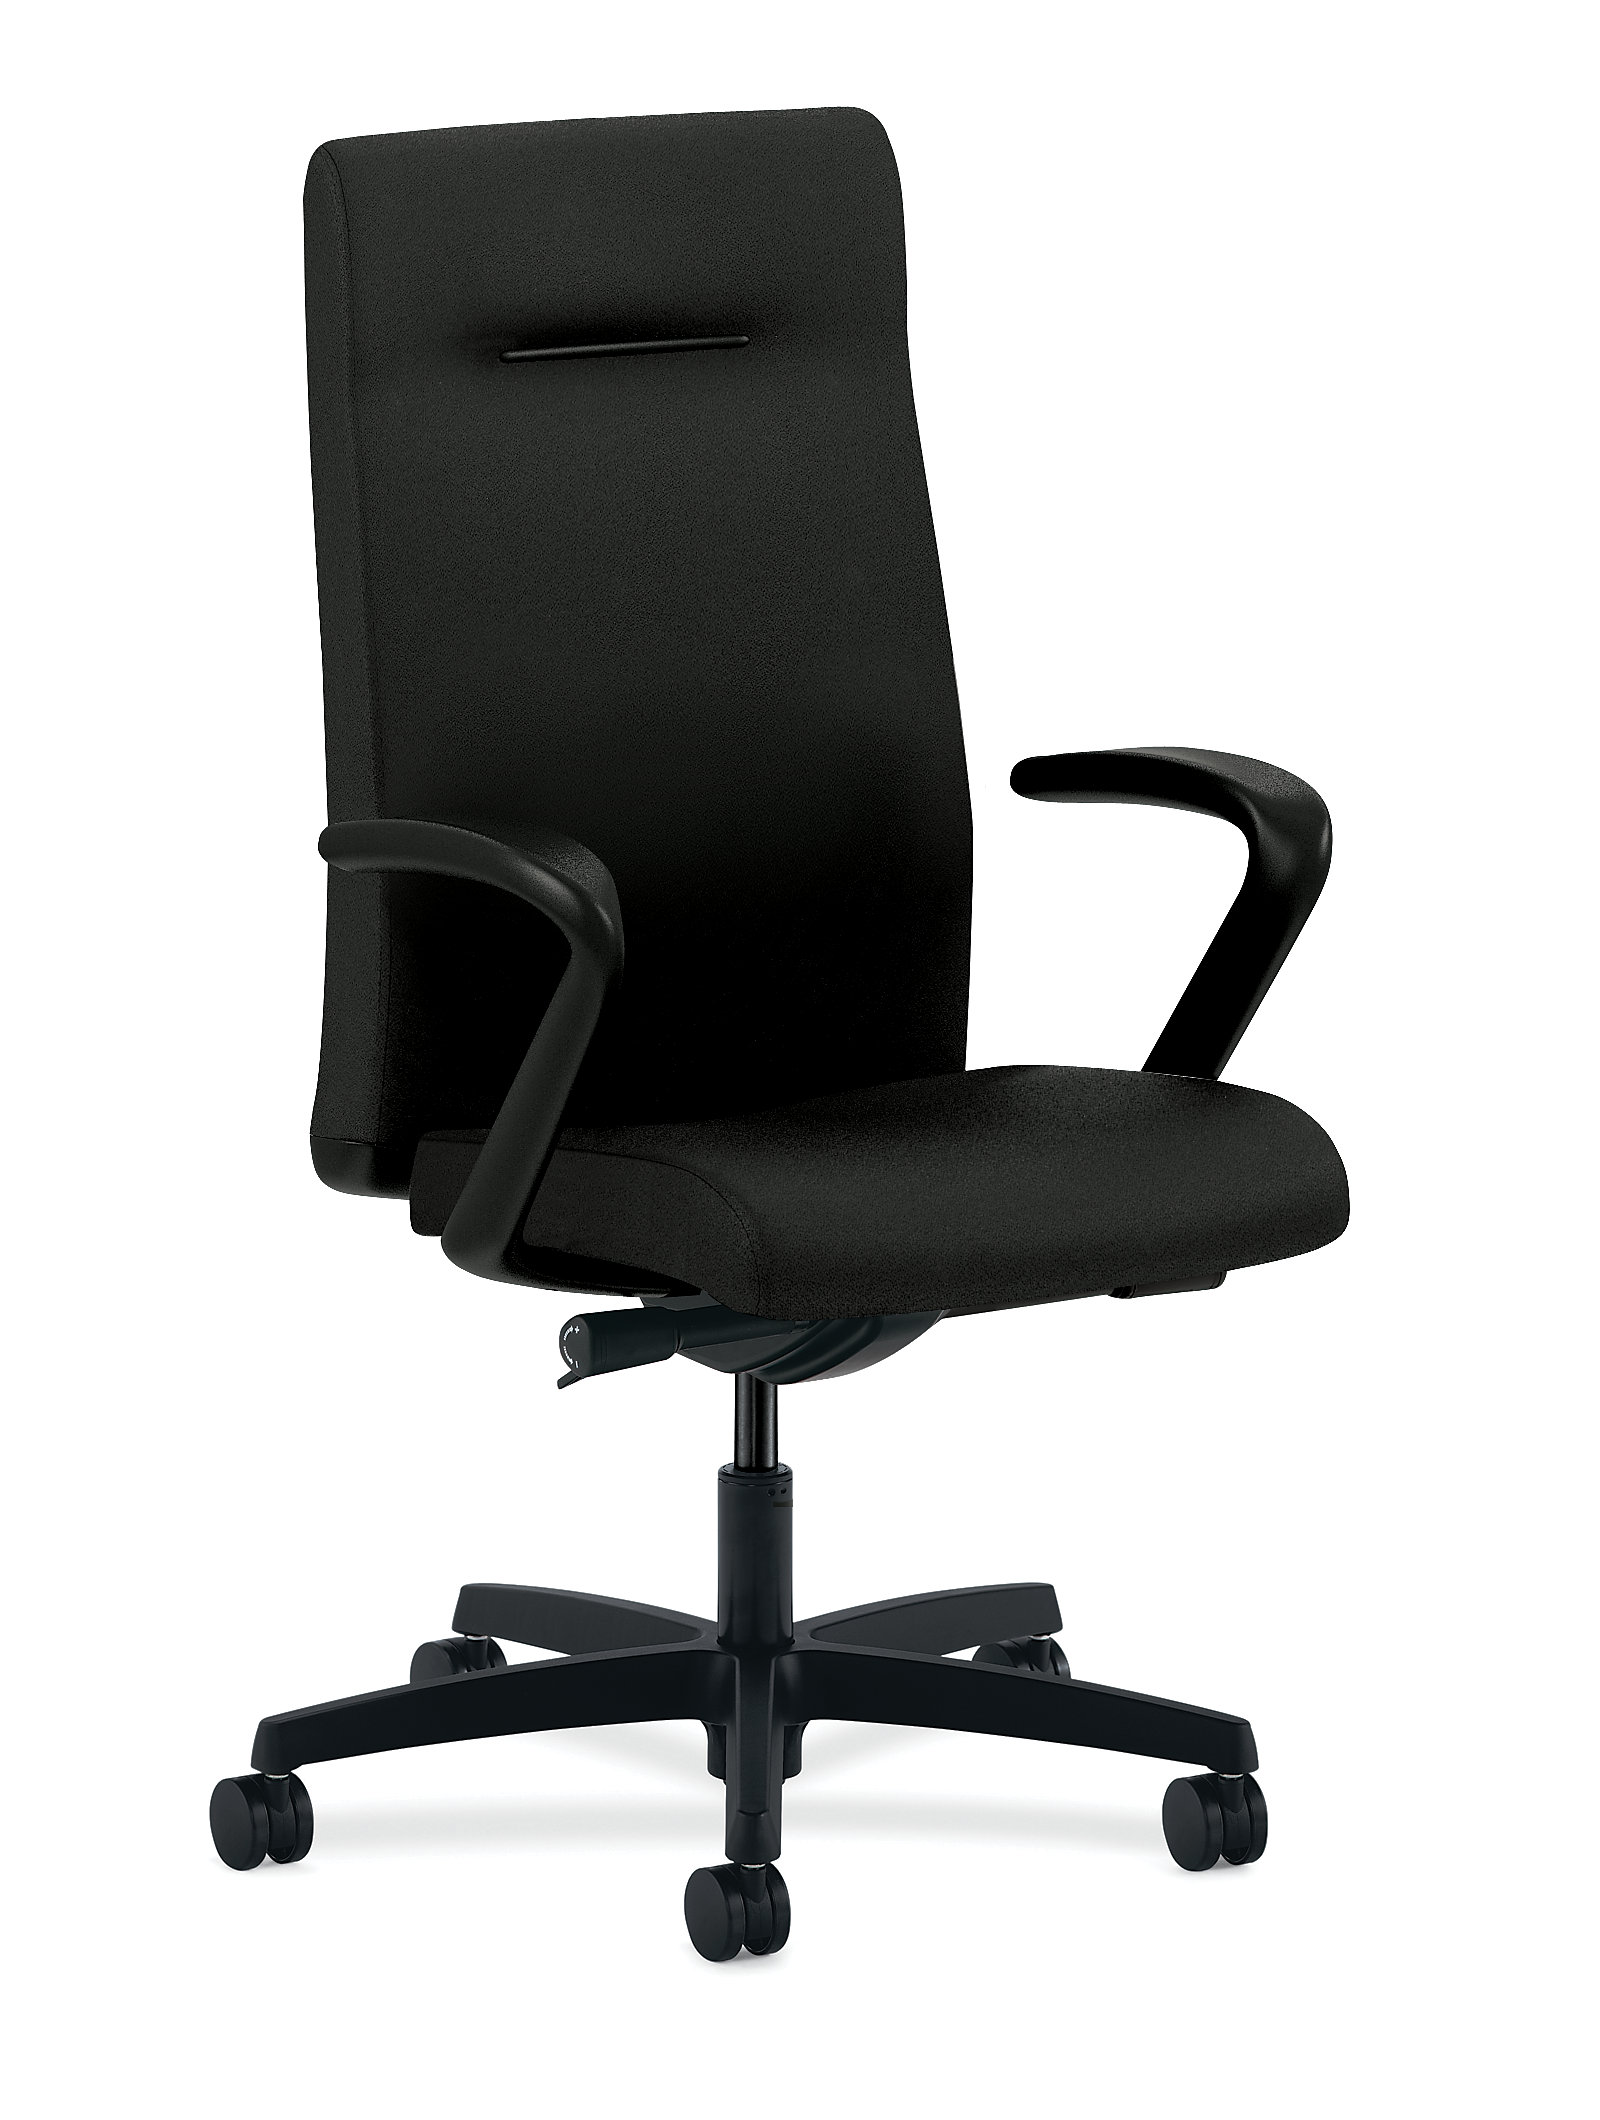 chairs black view angle furniture product office chair rentals conference stackable